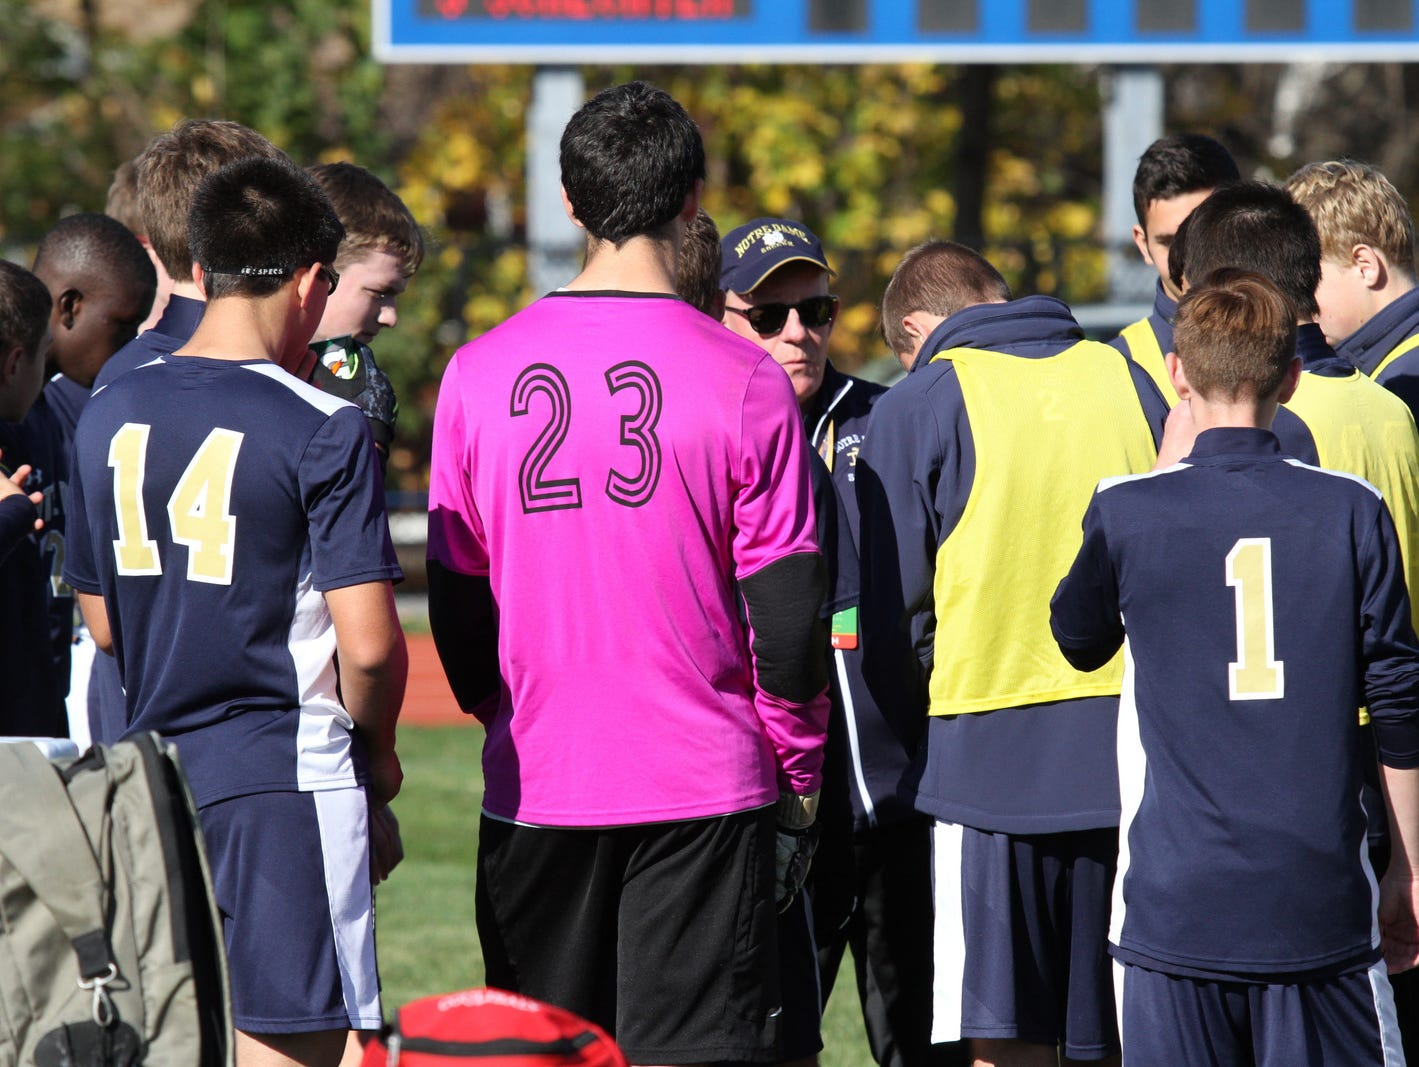 Notre Dame head coach Brian Adams talks to his team during halftime of Sunday's 9-1 win over Solomon Schechter in the New York state Class C championship game in Middletown.